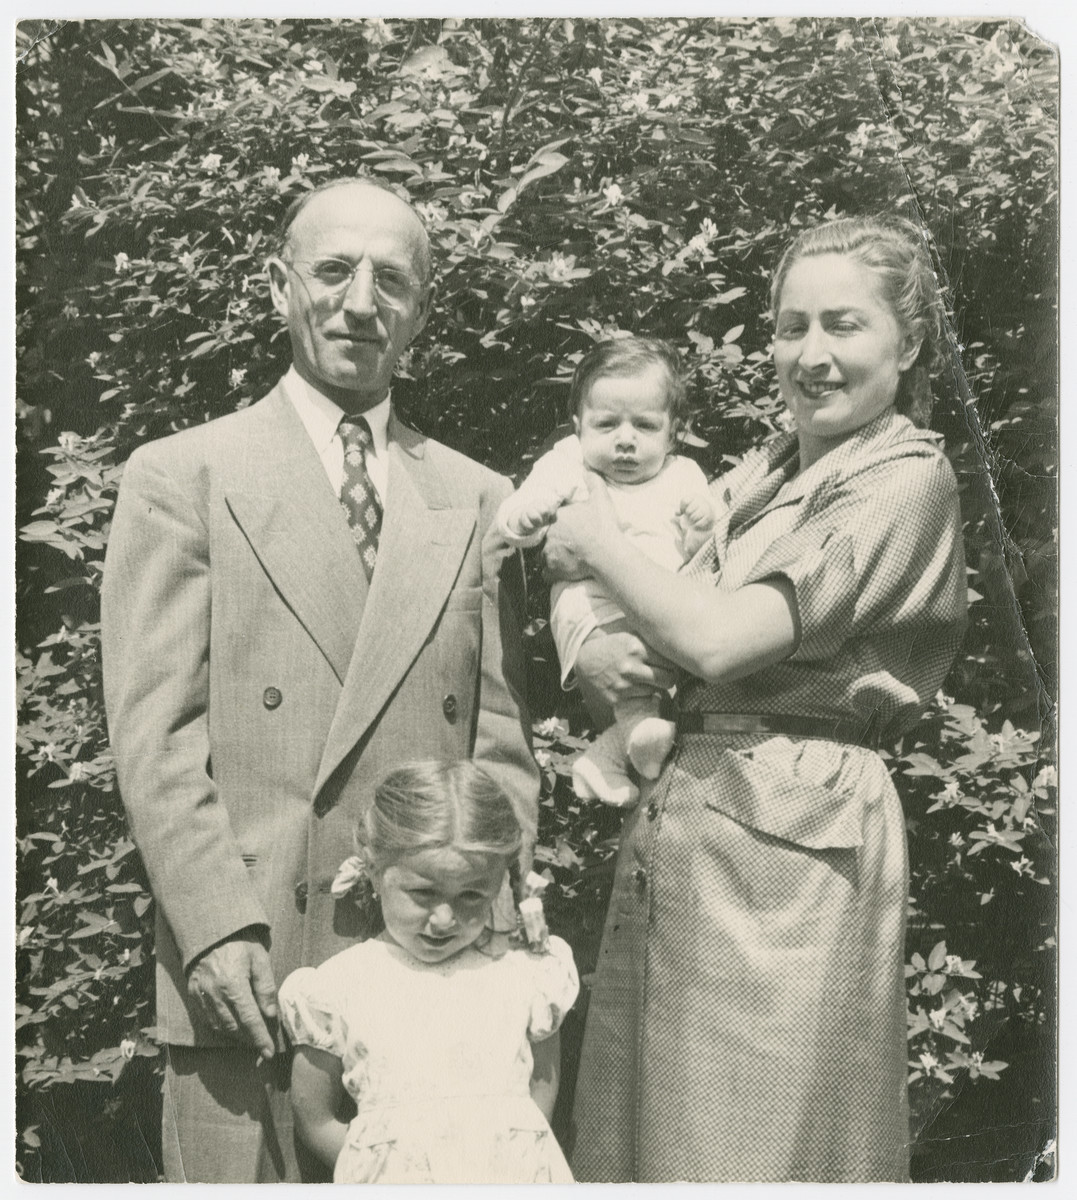 Rabbi and Mrs. Freilich pose with their two young children, Hadassah and Ary, in Gardener, MA.